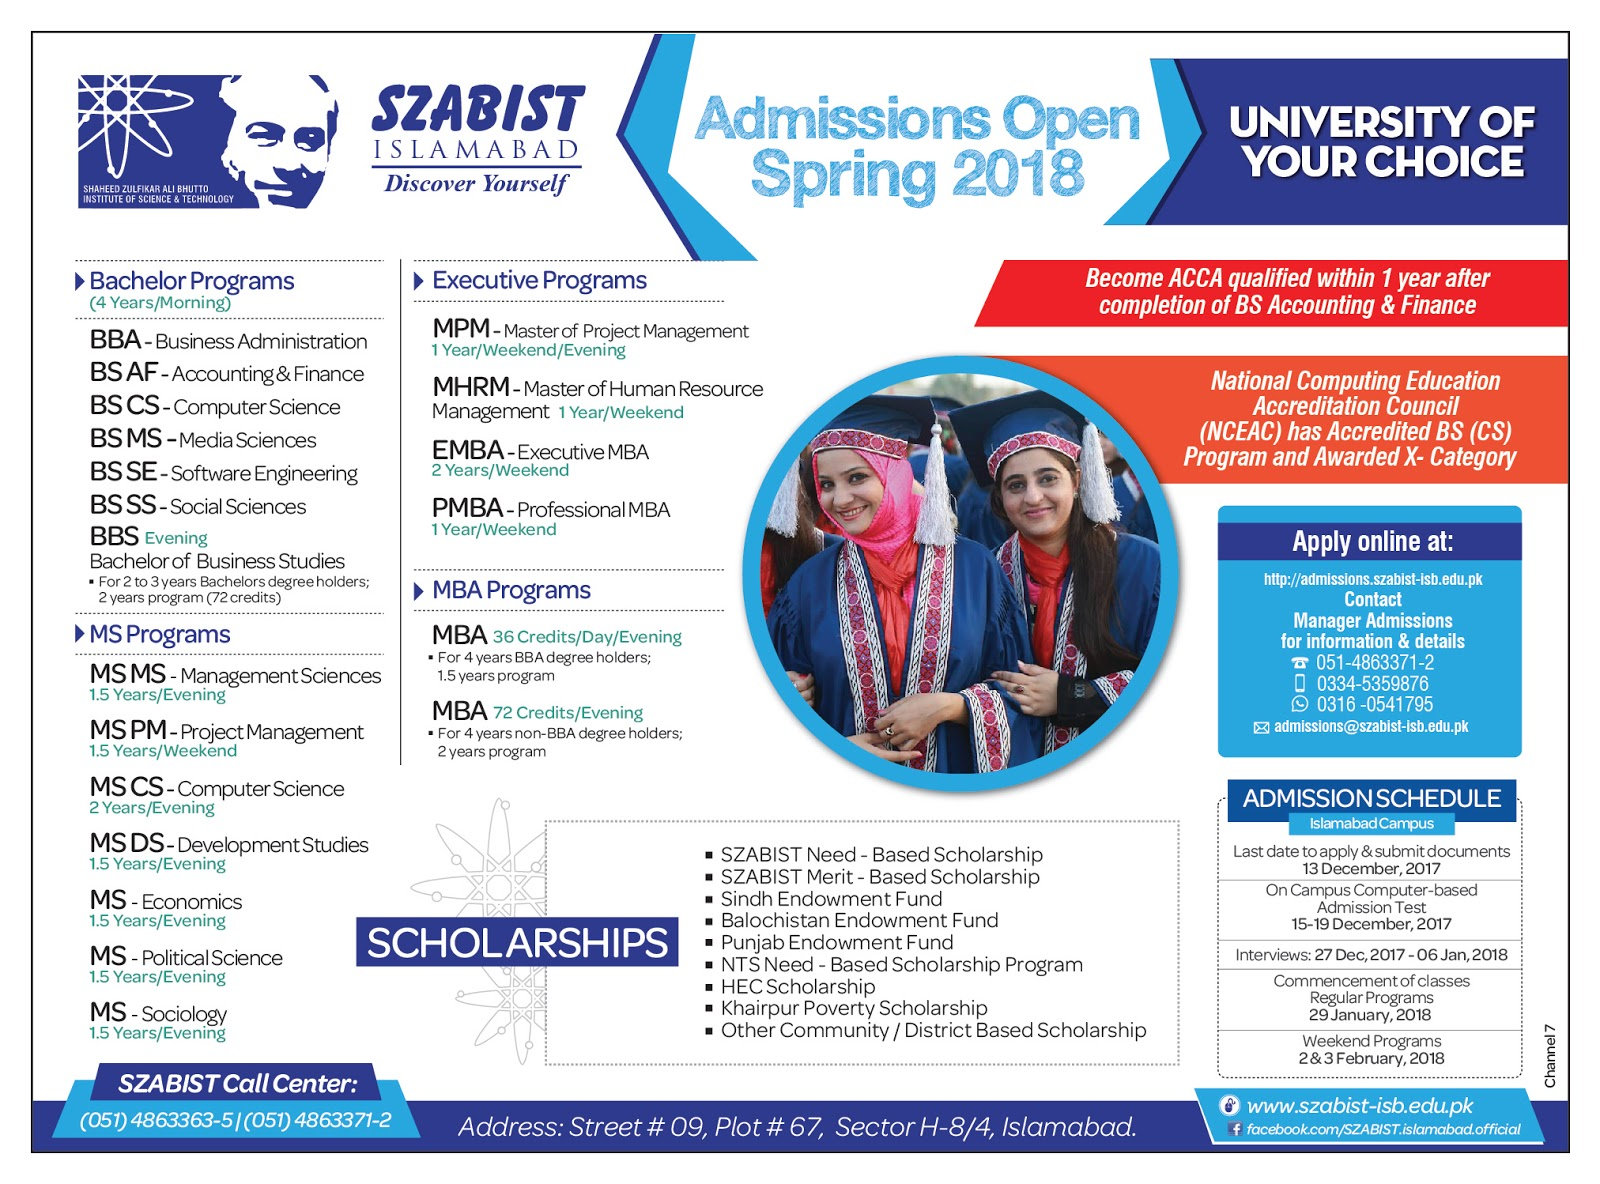 Admissions in Shaheed Zulfikar Ali Bhutto Institute of Science and Technology - SZABIST